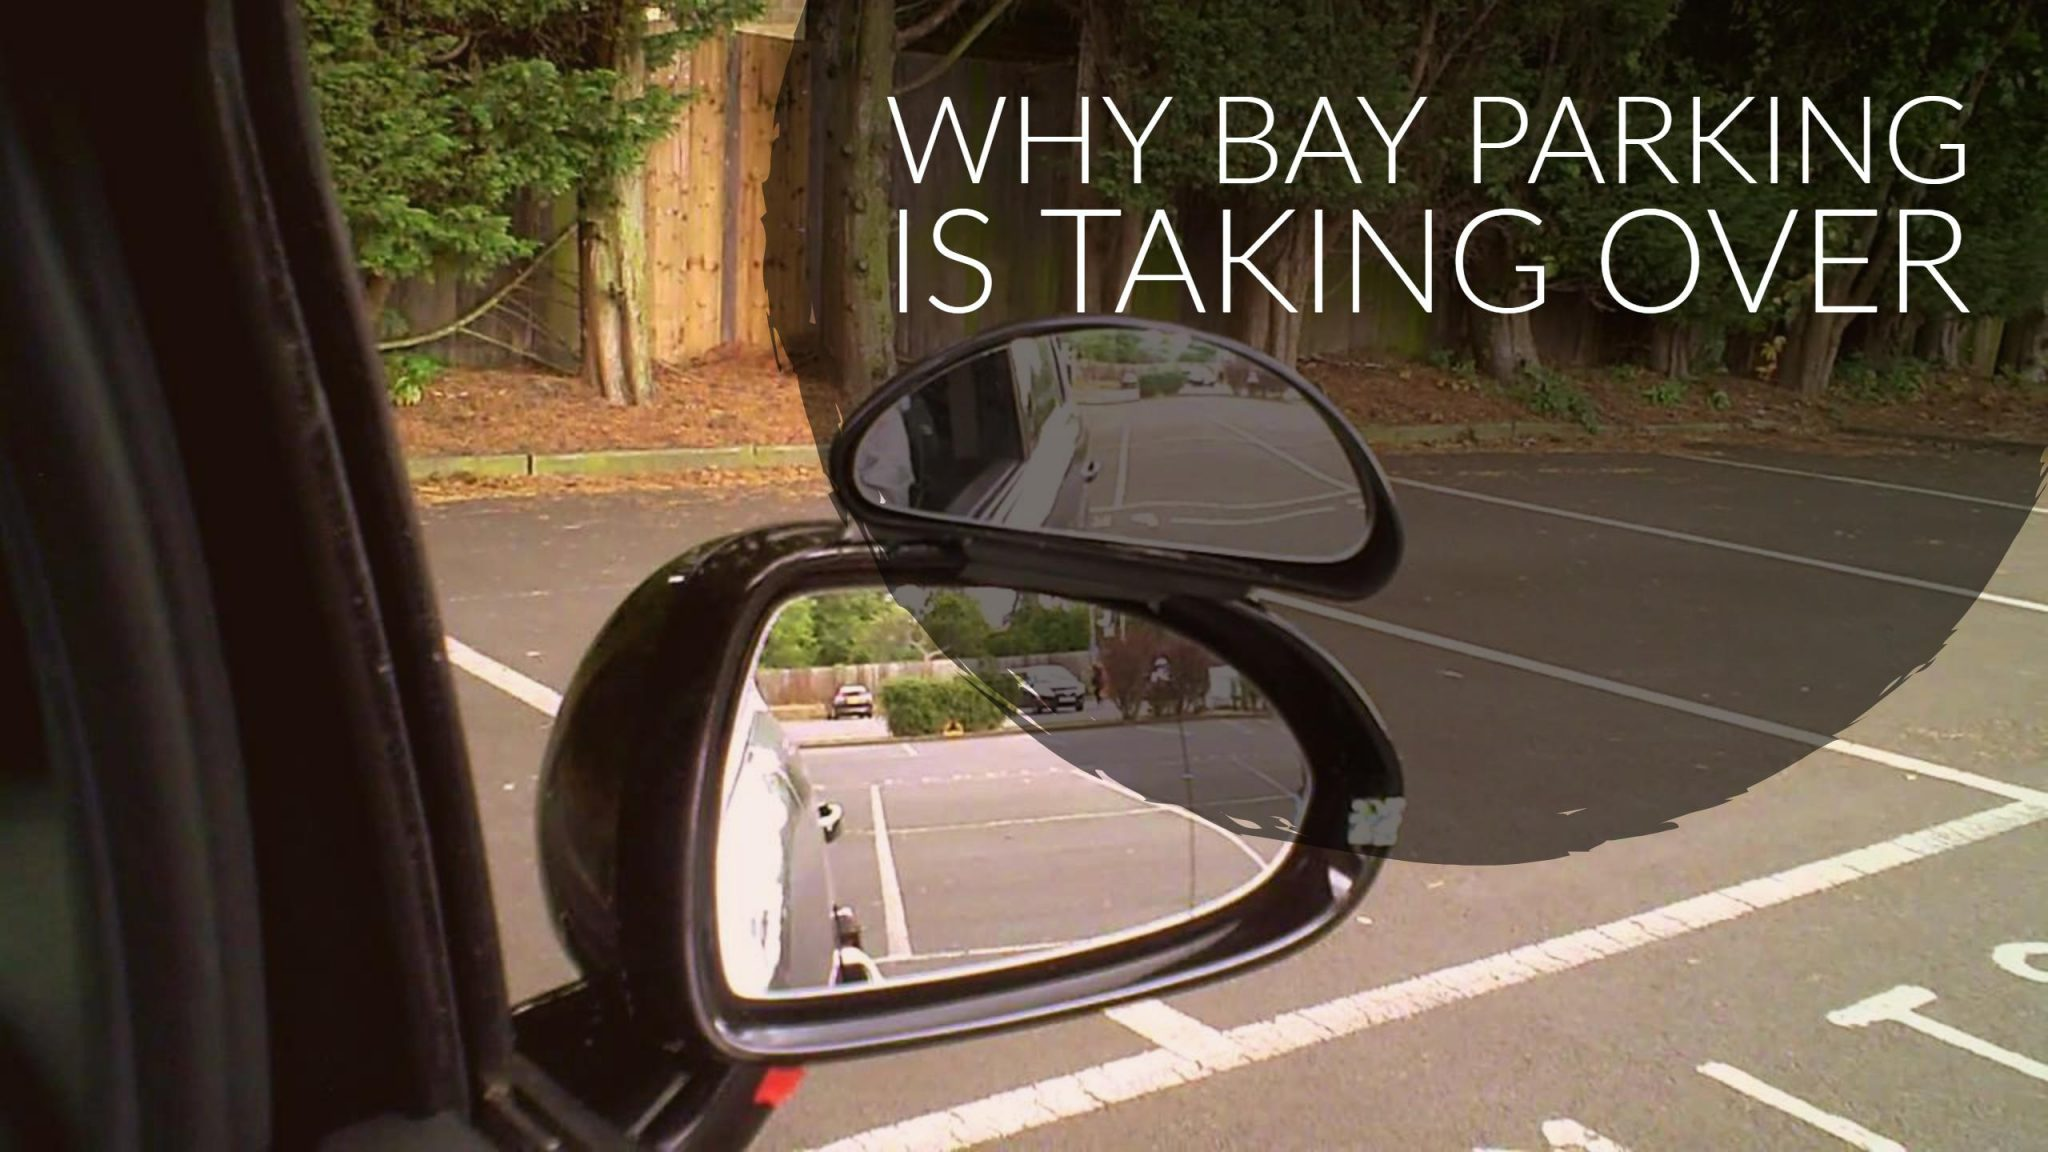 Why Bay Parking Is Taking Over